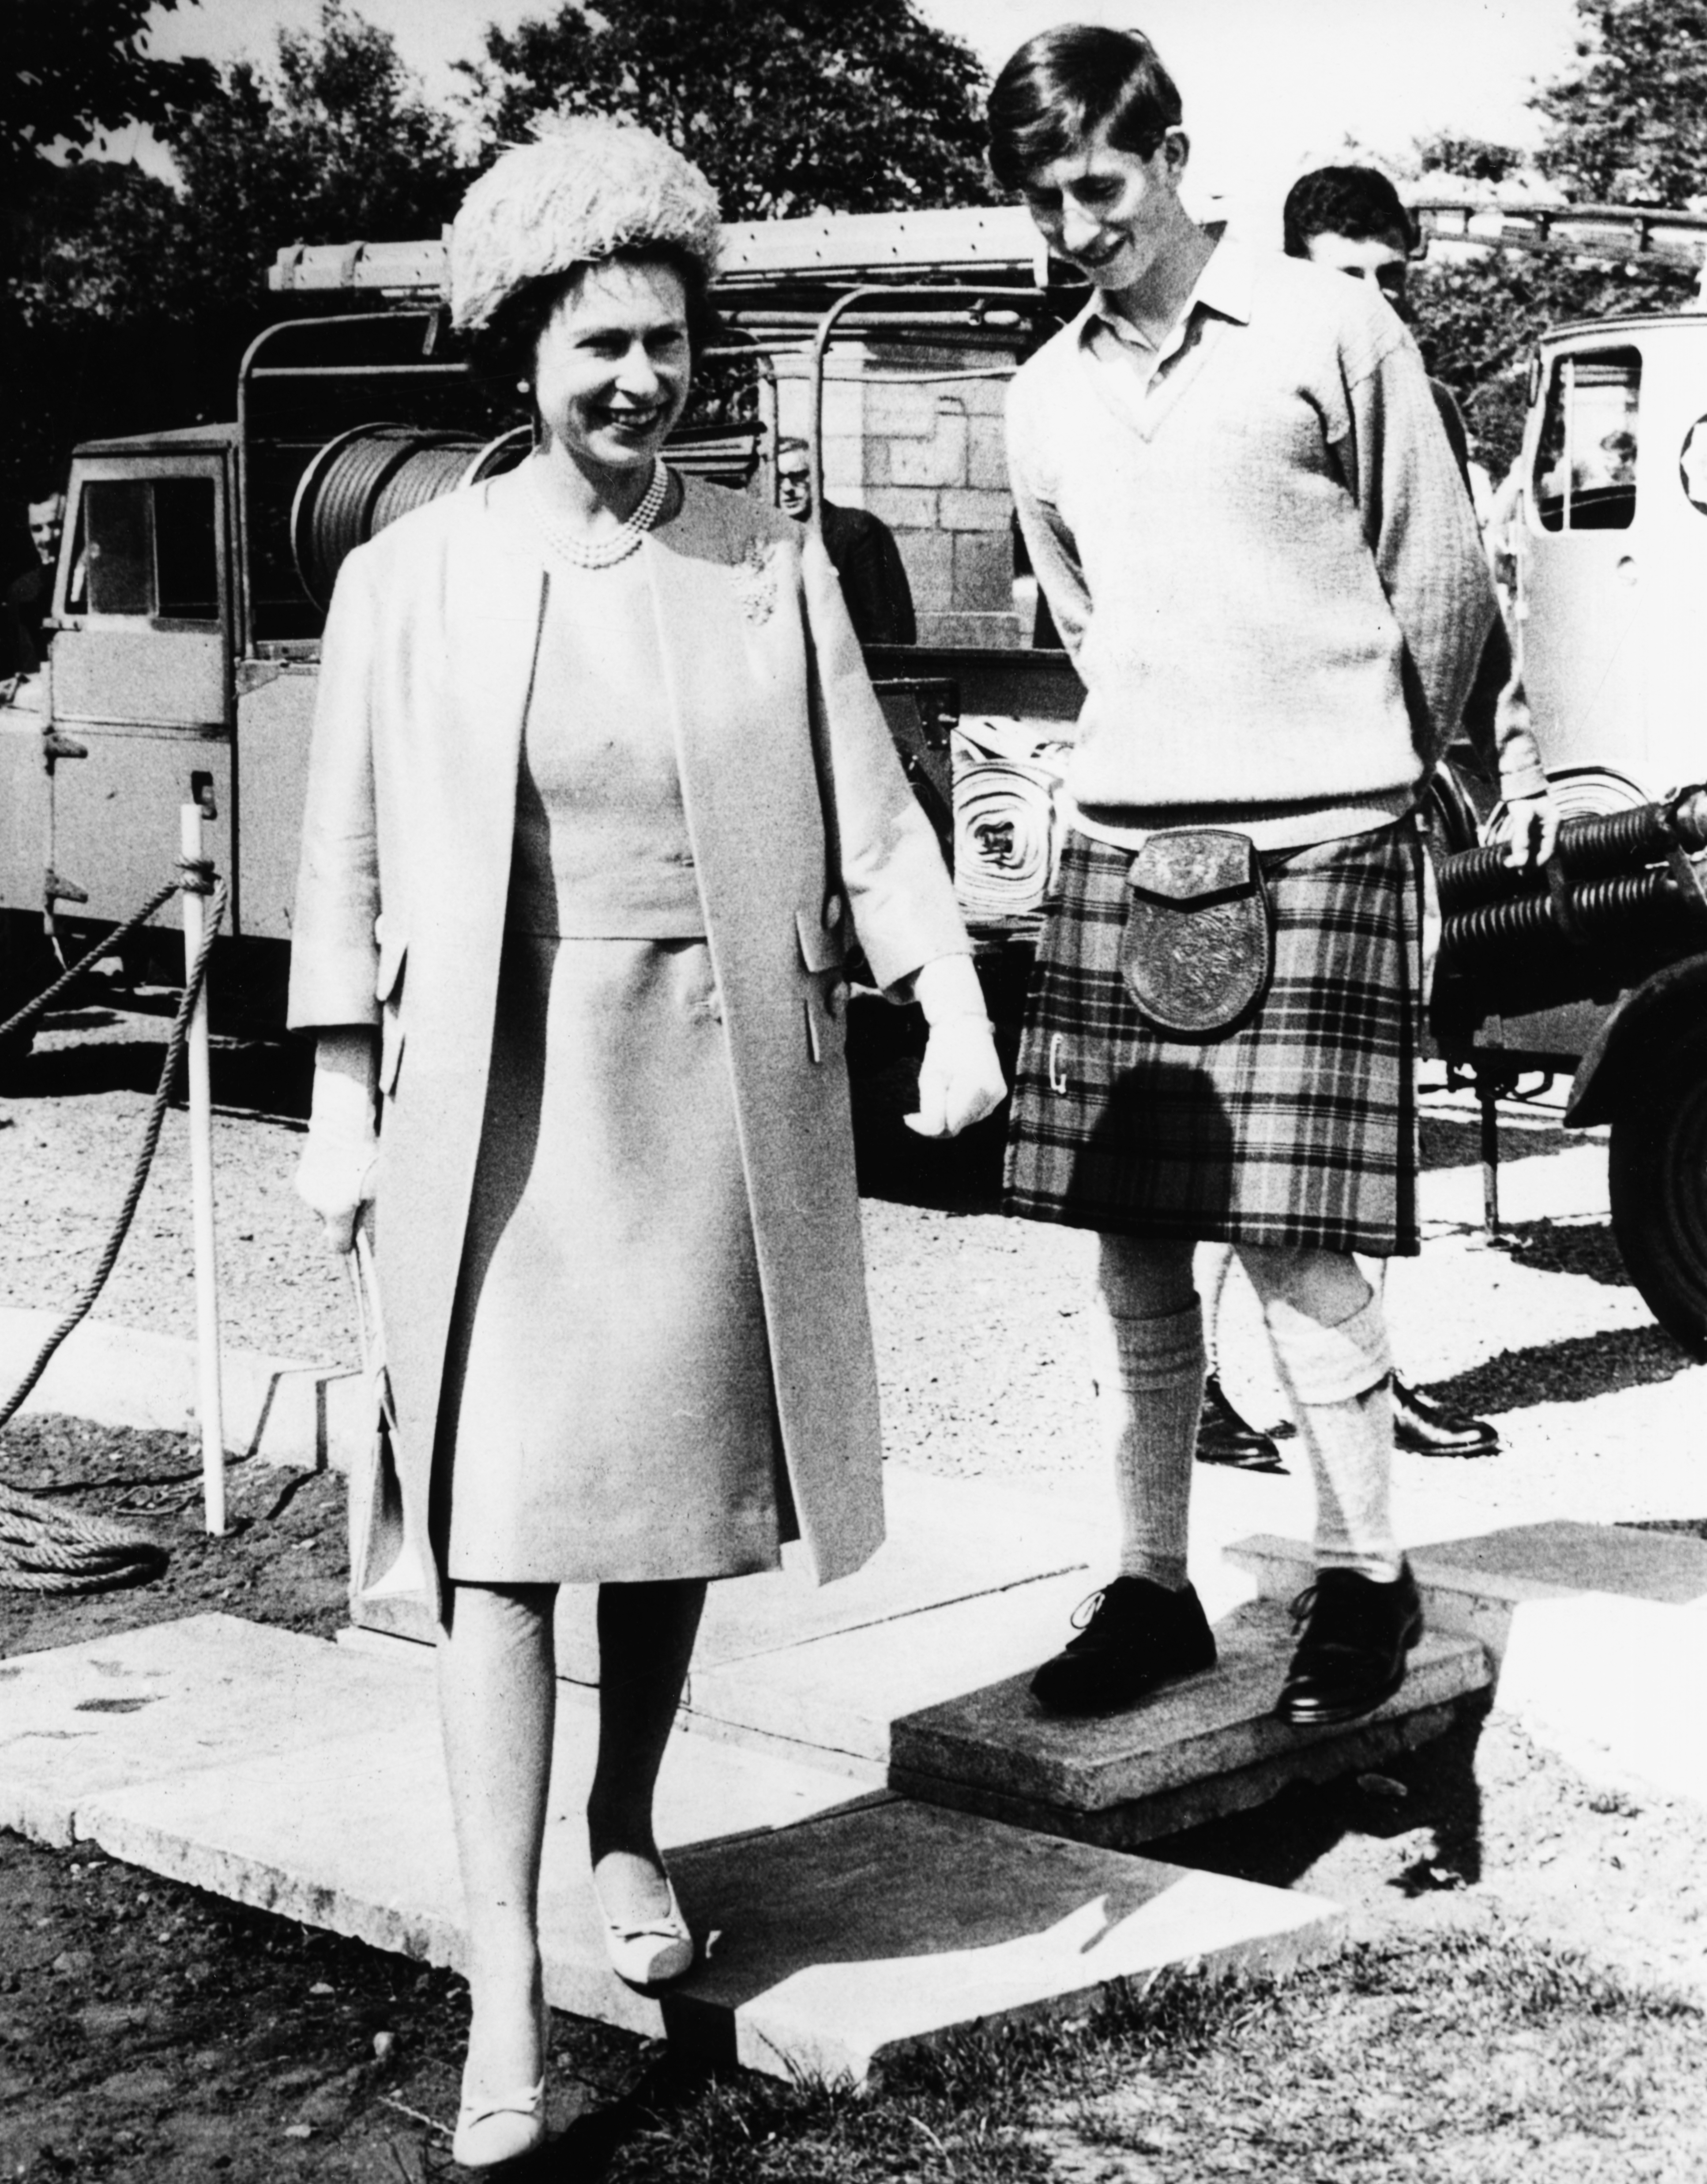 Queen Elizabeth II and Prince Charles, who is Head Boy here, pictured during a visit to Gordonstoun School, where she opened their new Sports Centre, Scotland, July 24th 1967. (Getty Images)